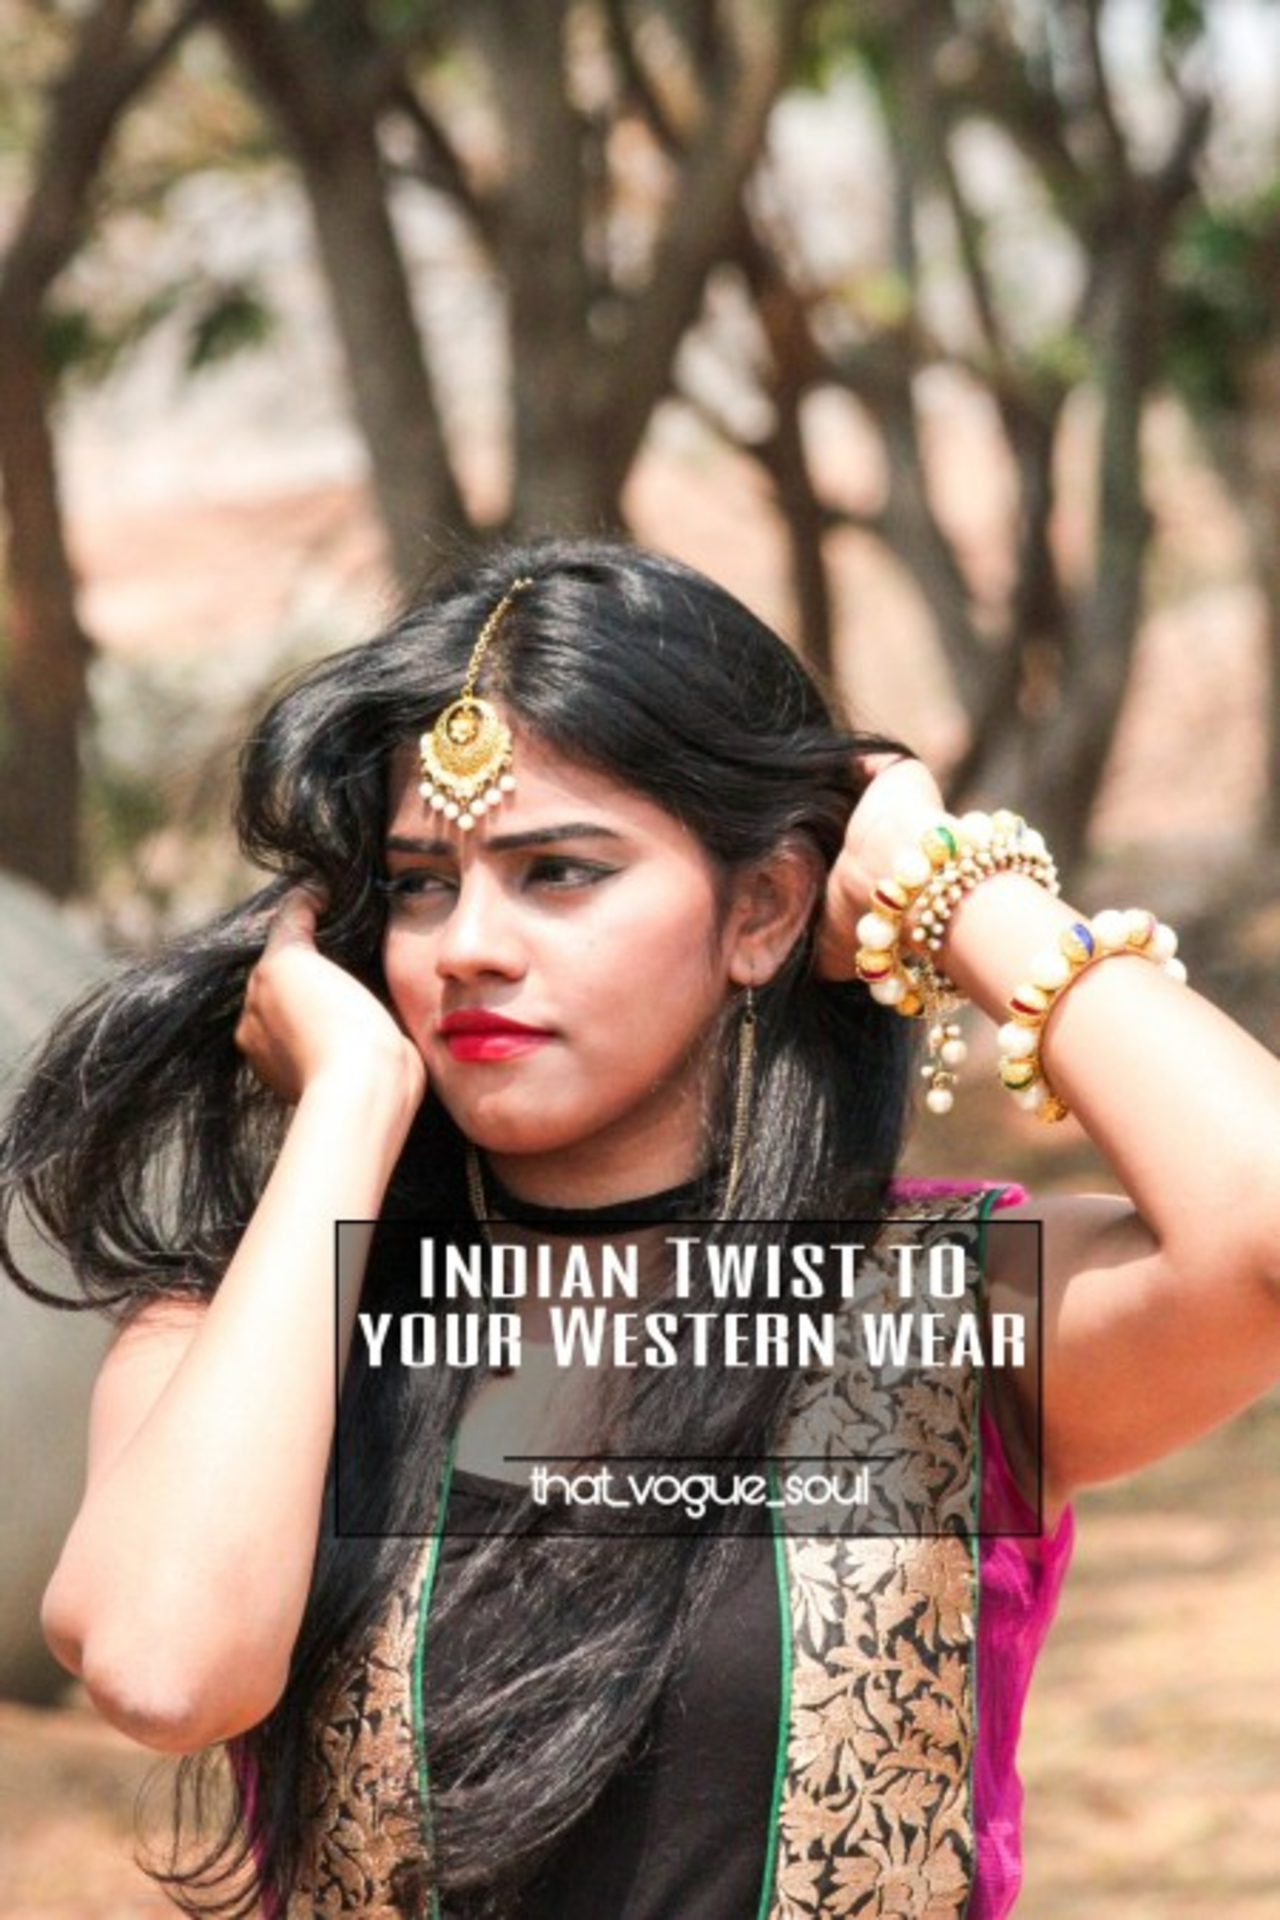 INDIAN TWIST TO YOUR WESTERN WEAR image